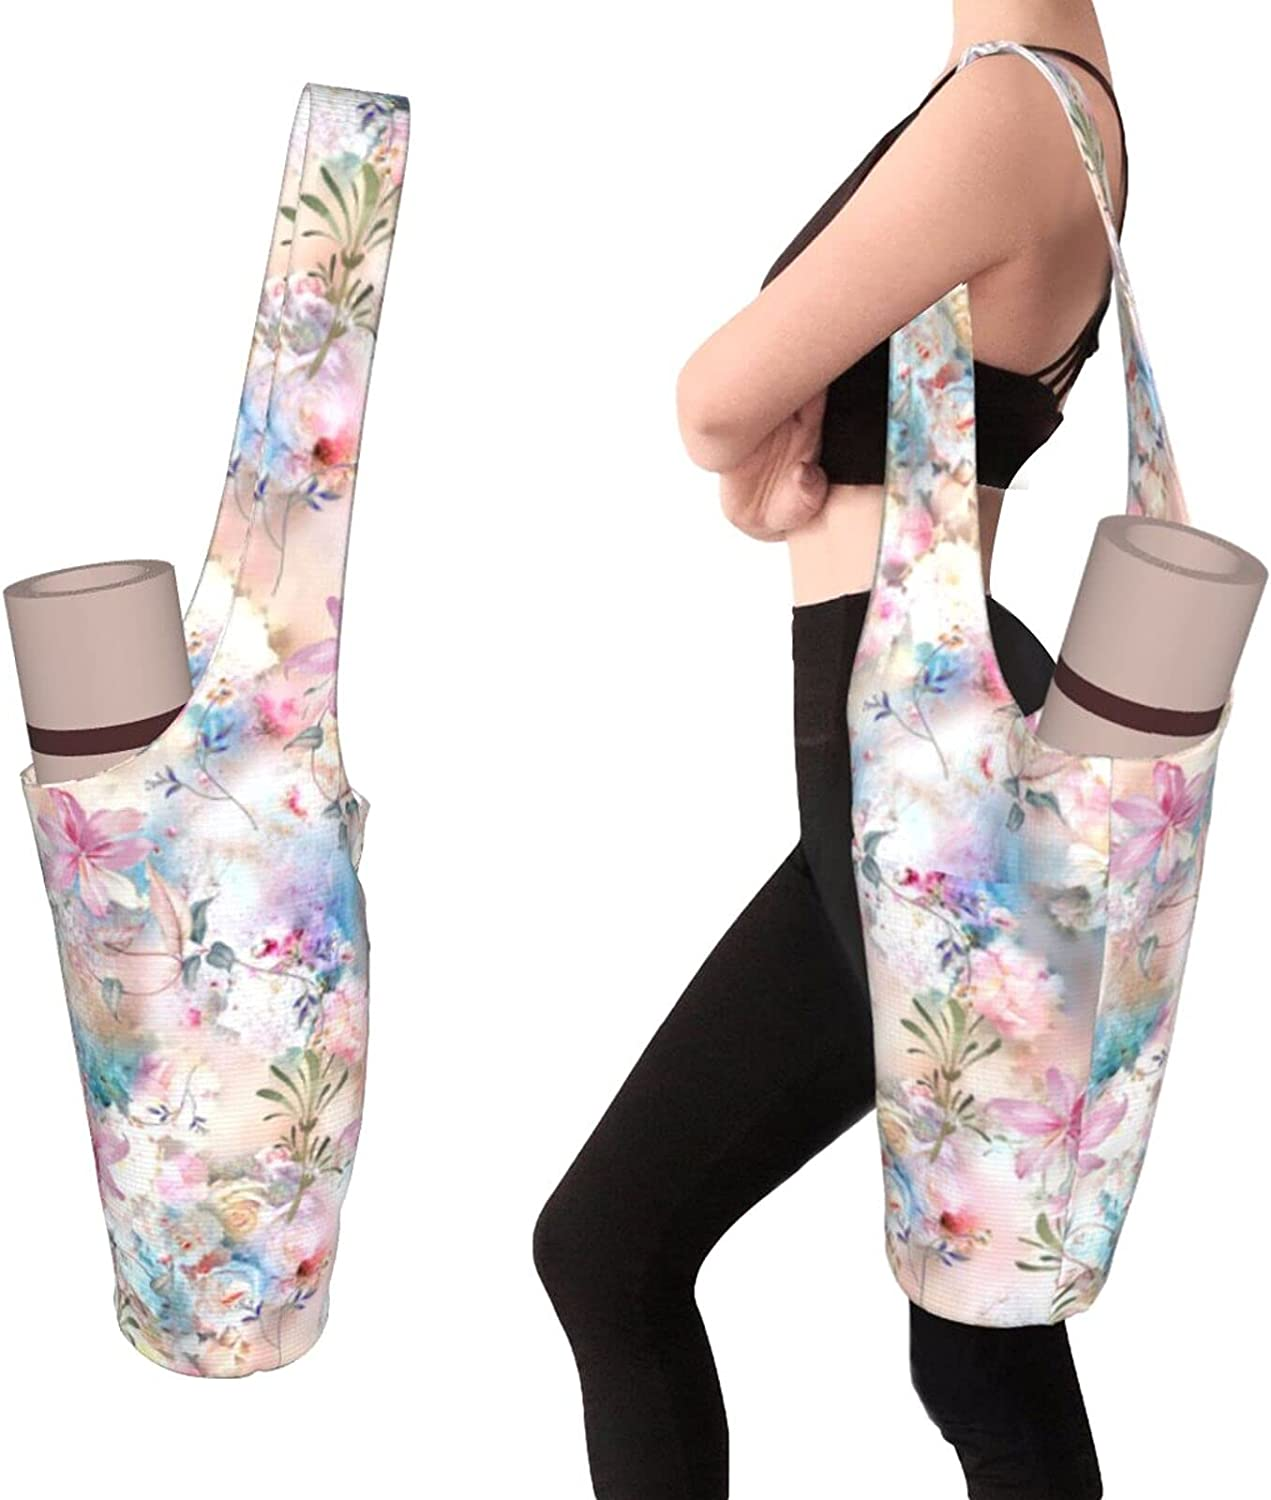 Purple and Blue Flowers Yoga Mat Yog New item Tote San Diego Mall Bag Sling Carrier with